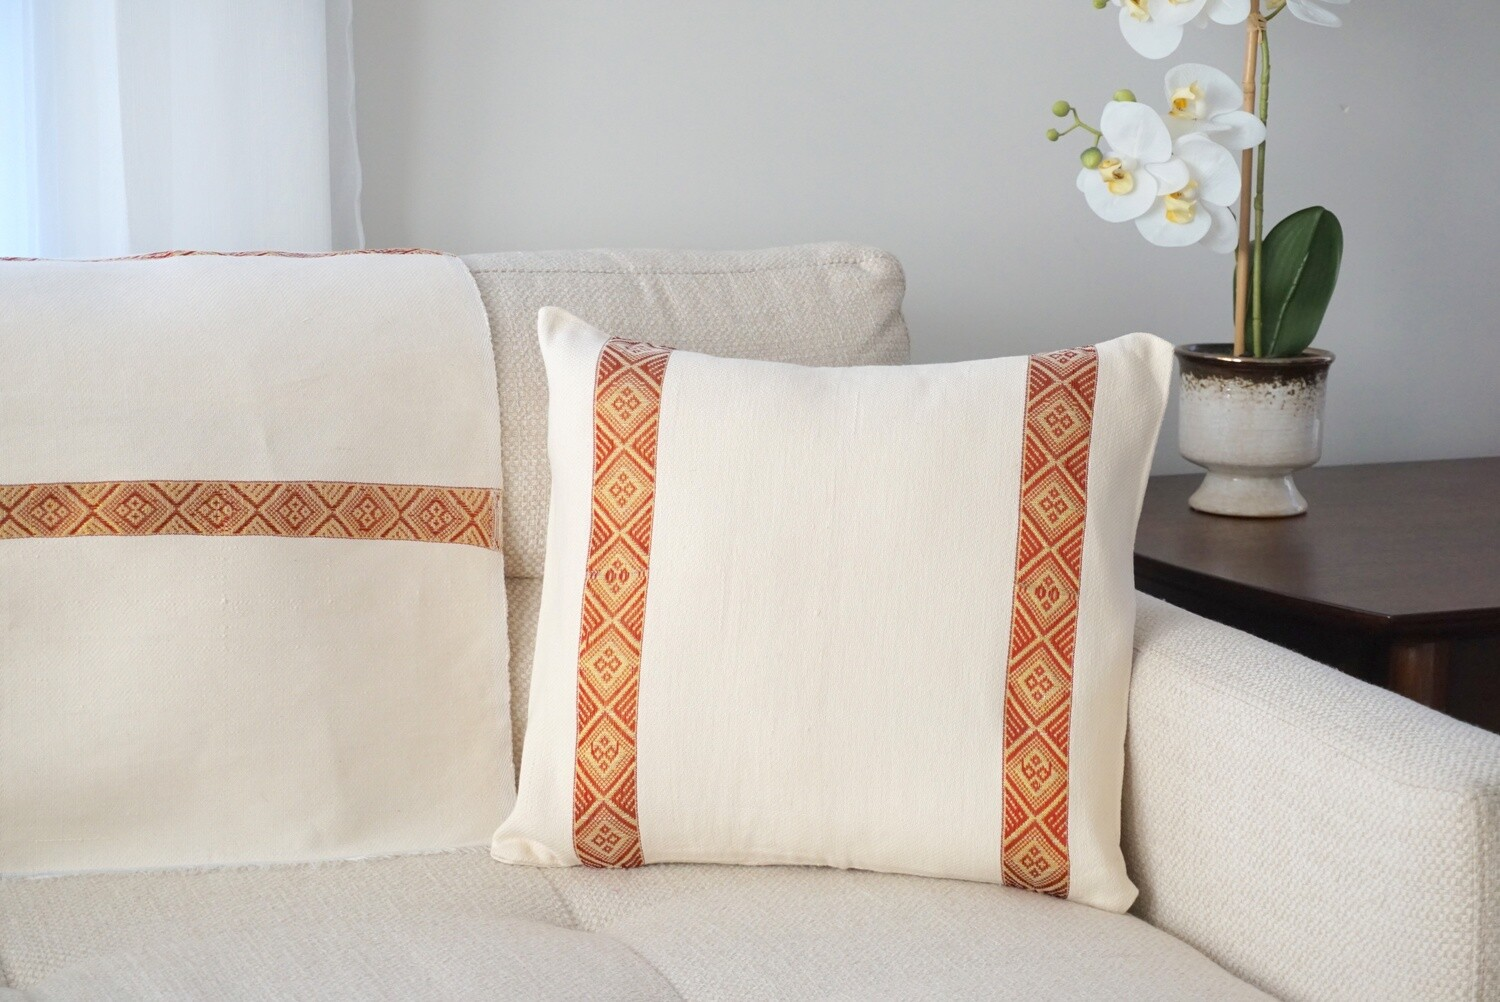 Accent Sofa Throw Pillow| Red On Cream| Handwoven| Blend Of Cotton Acrylic